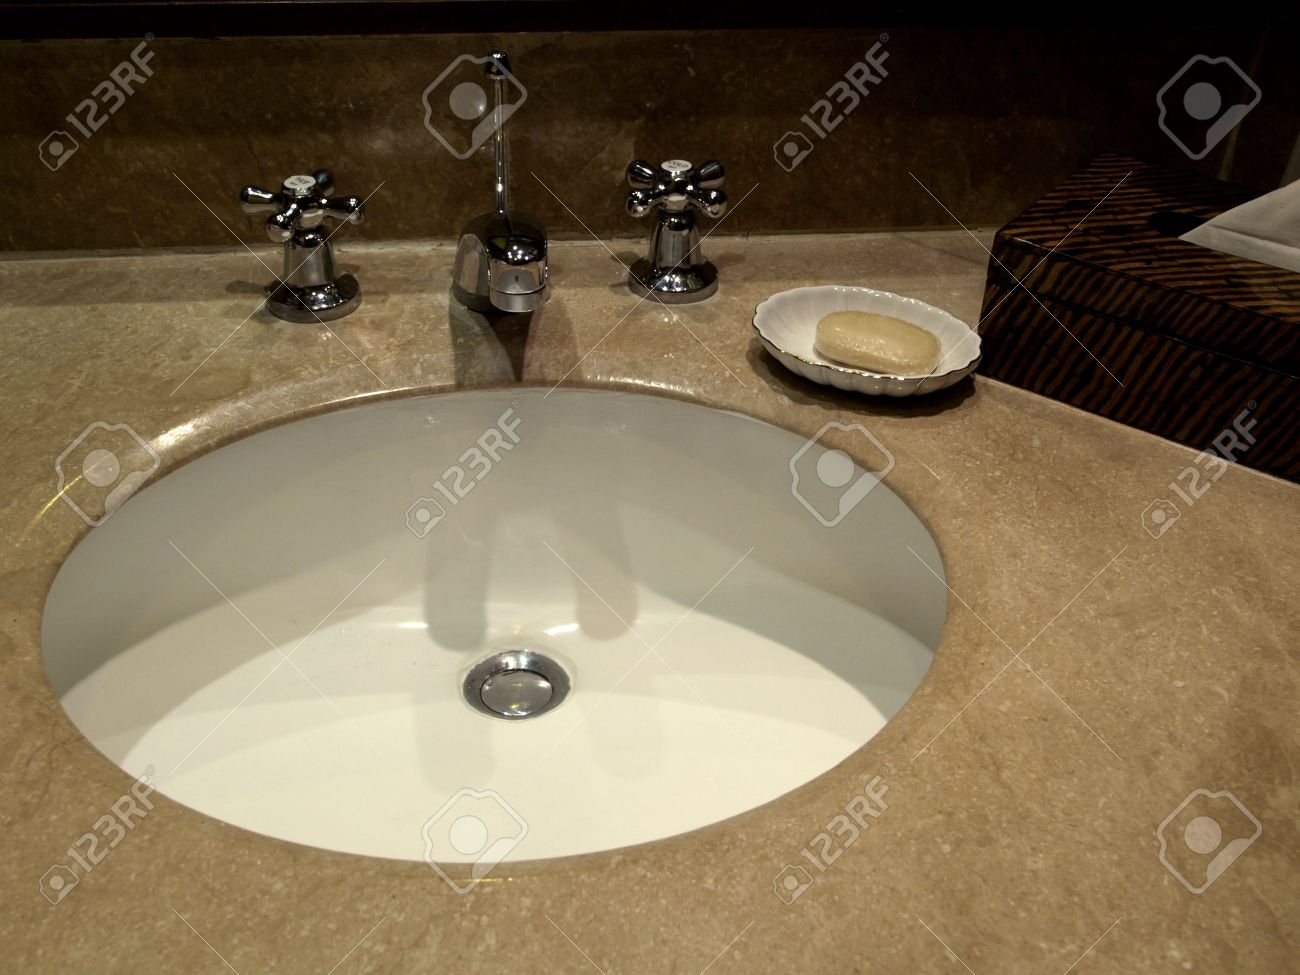 Marble Basin Wash Basin Tap And Marble Surface On Luxury Bathroom